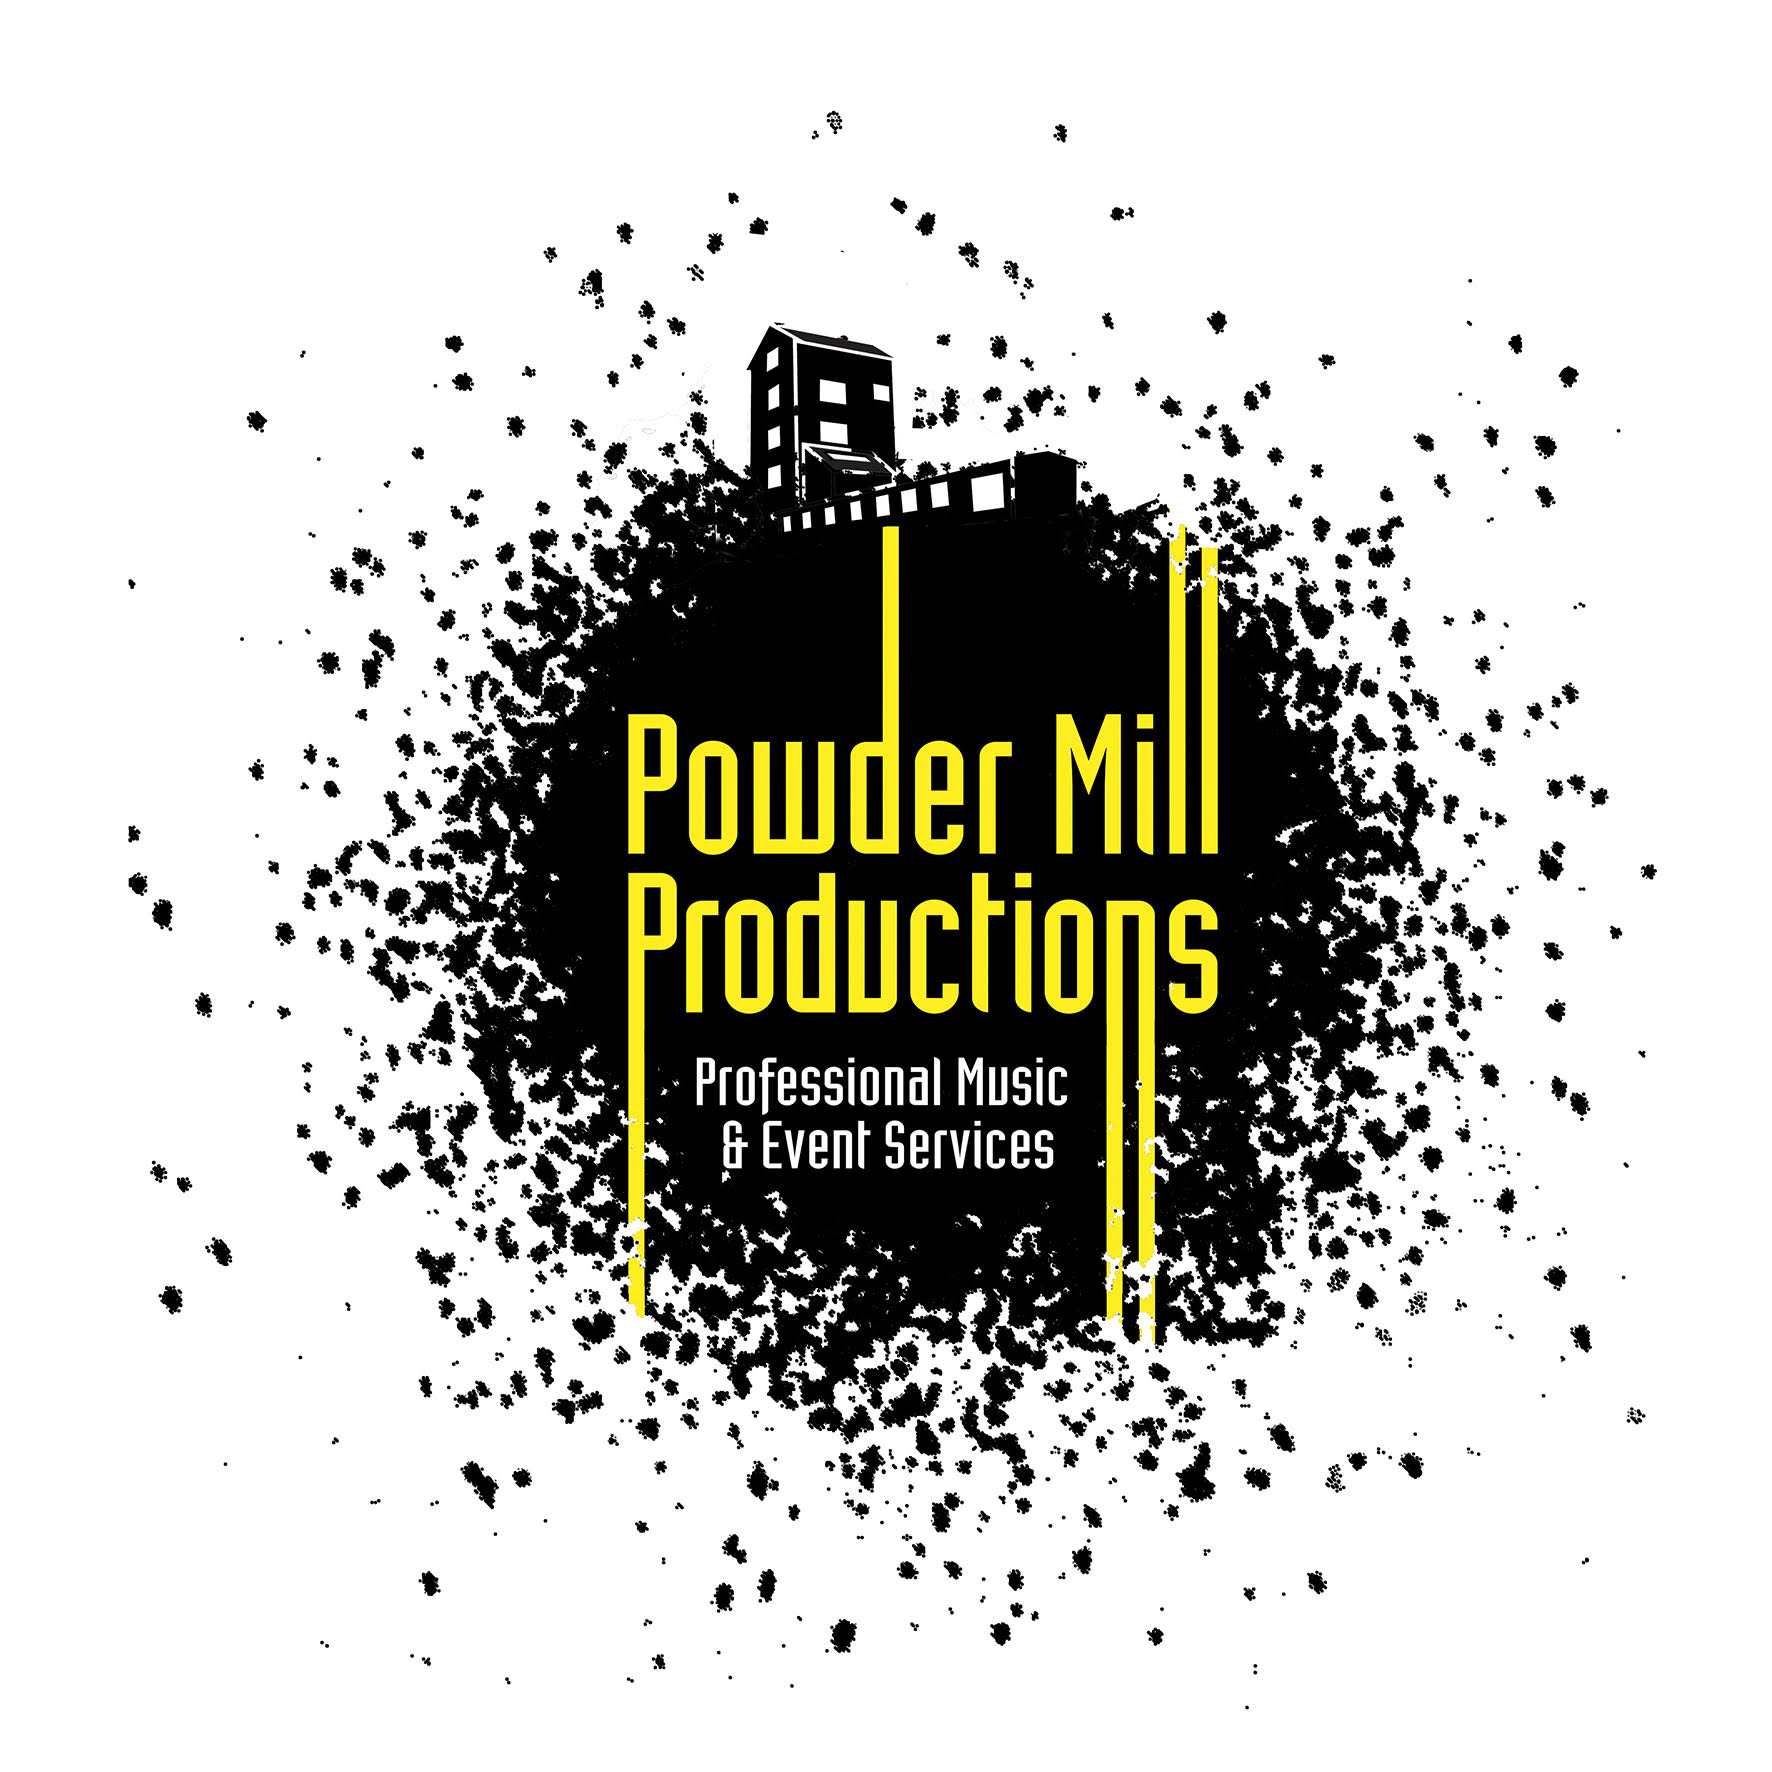 Powder Mill Productions